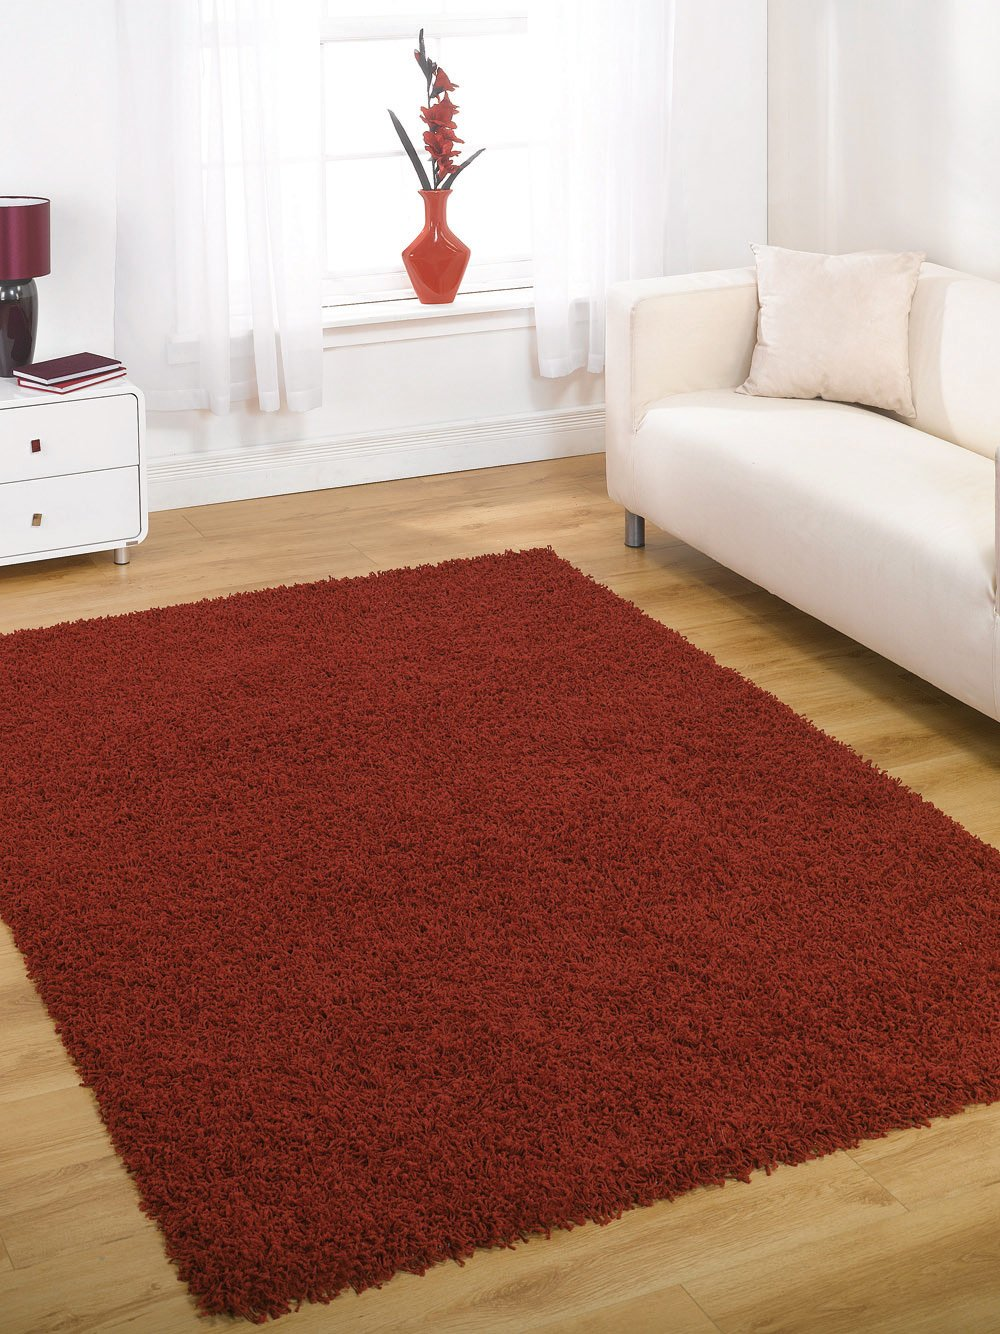 5 x 7 rug size in cm best rug 2018 for Living room 4x5